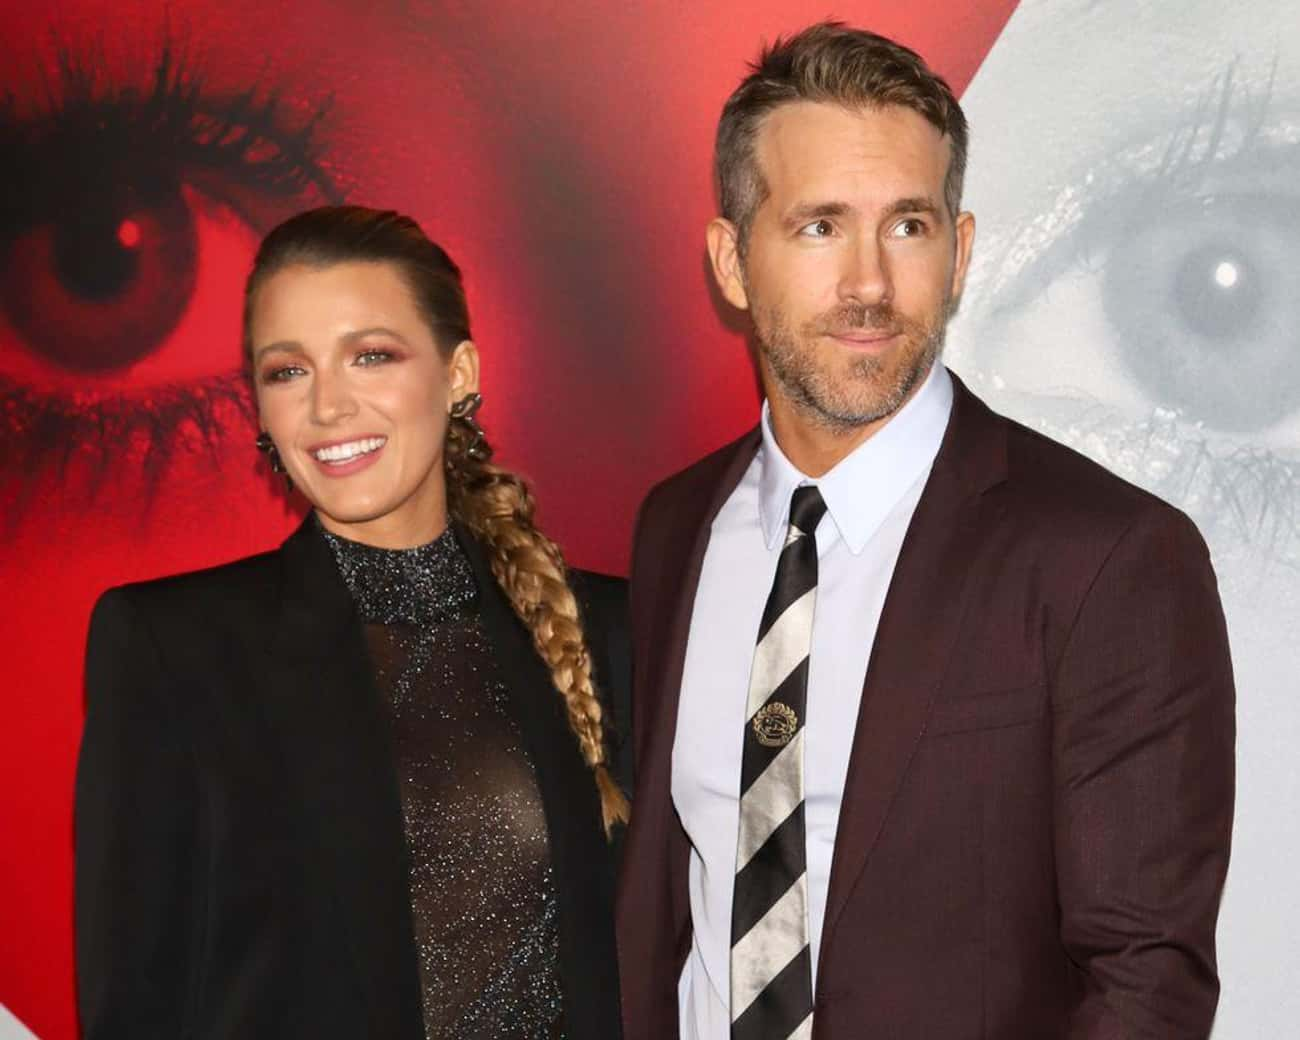 Ryan Reynolds And Blake Lively is listed (or ranked) 2 on the list These Celebs Found Love On A Blind Date